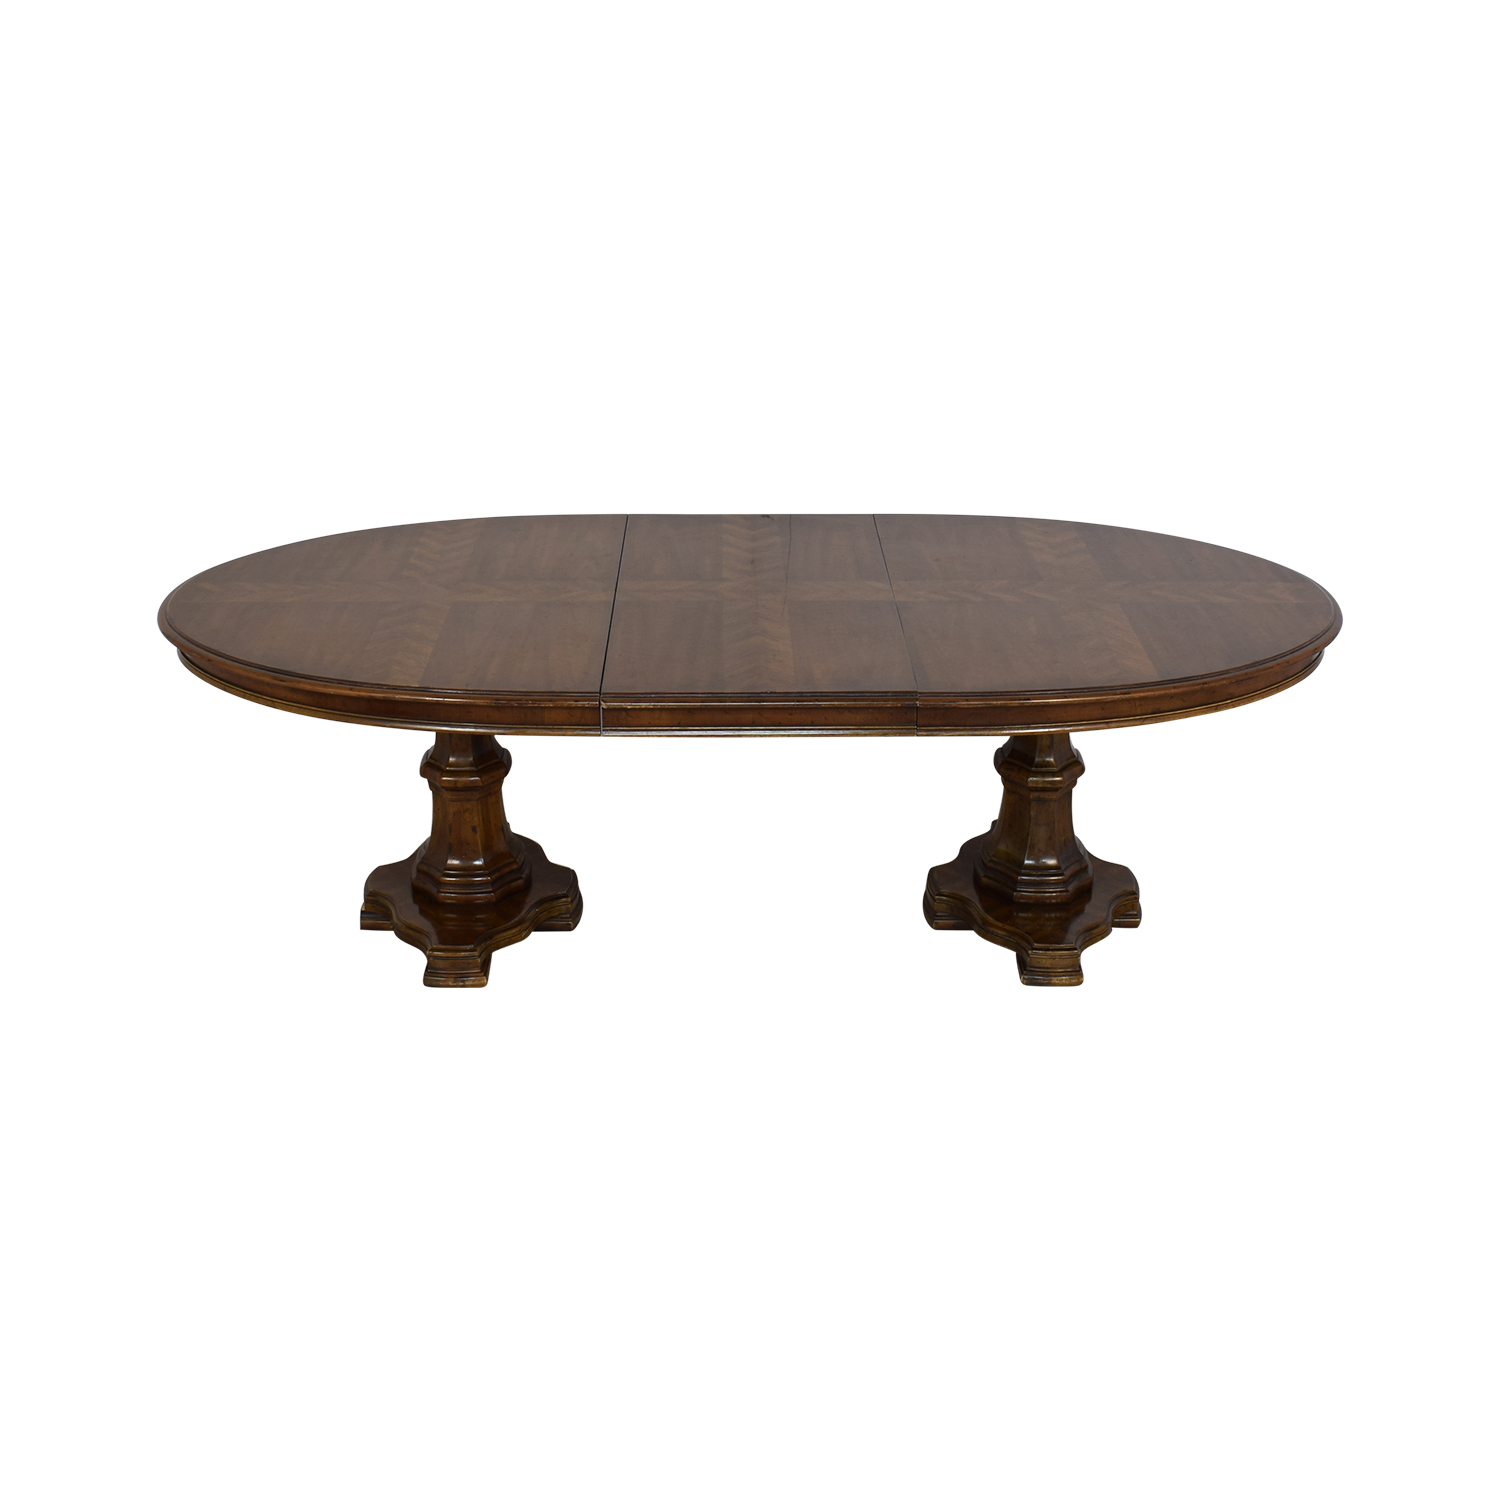 Drexel Heritage Drexel Heritage Grand Tour Double Pedestal Dining Table discount